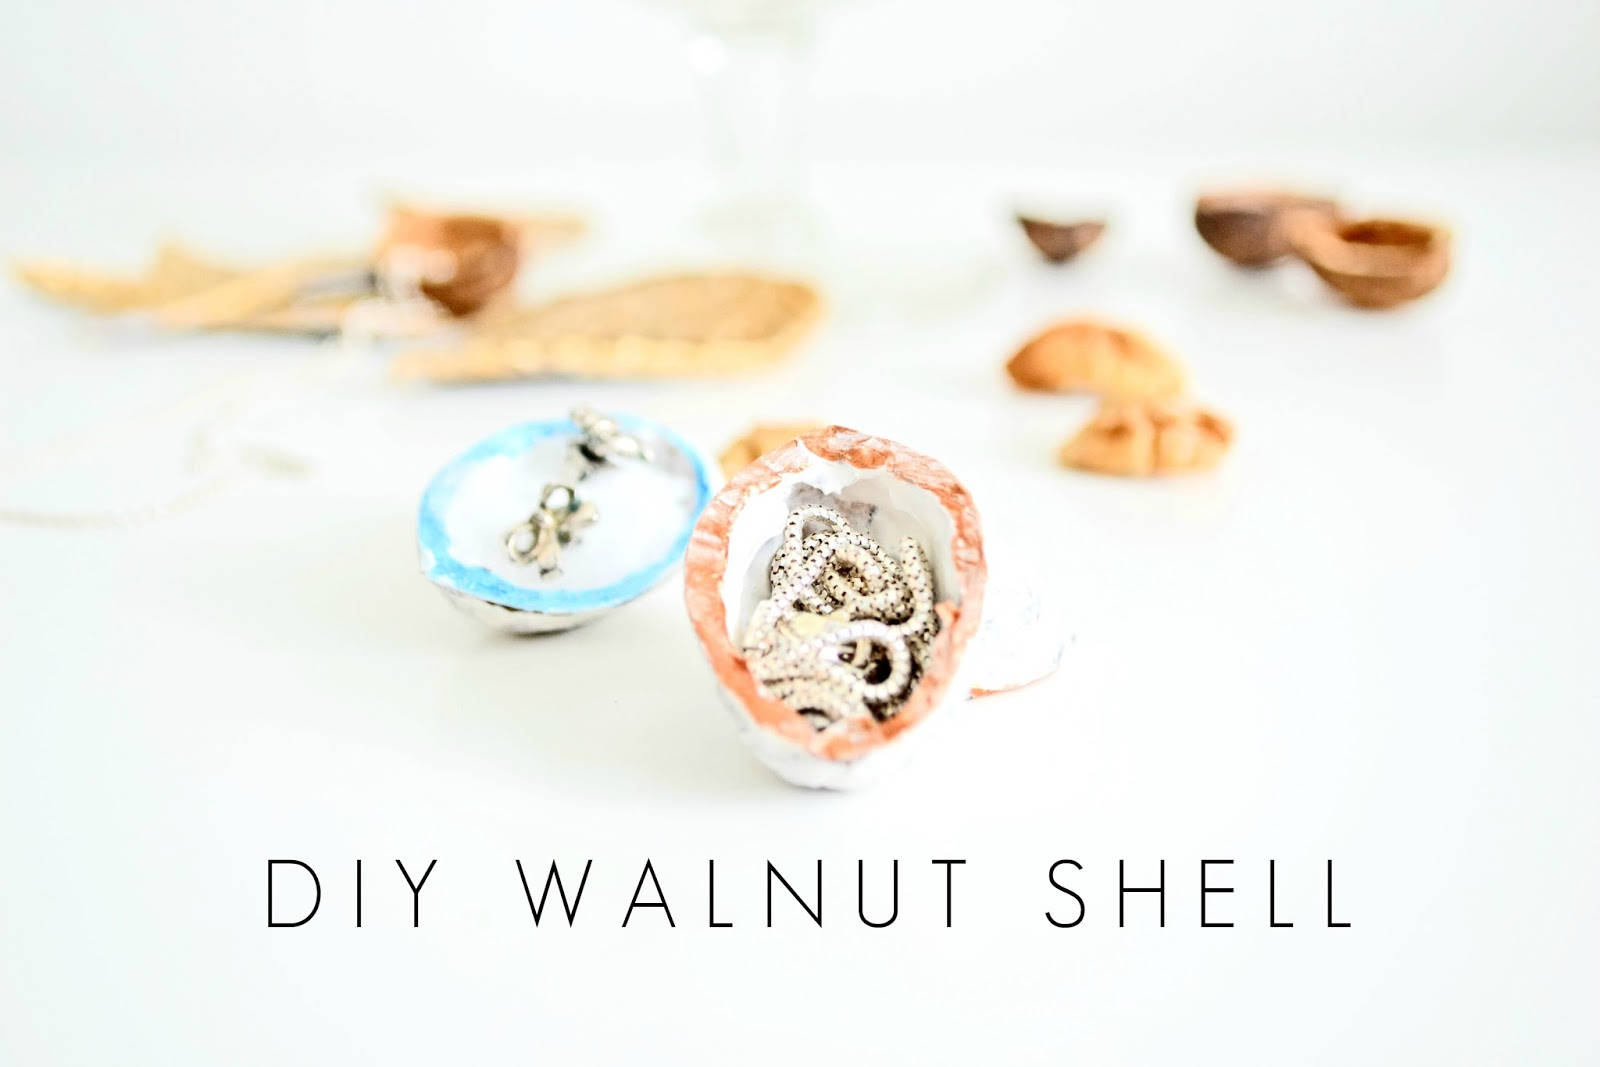 DIY Walnut Shell Ideas